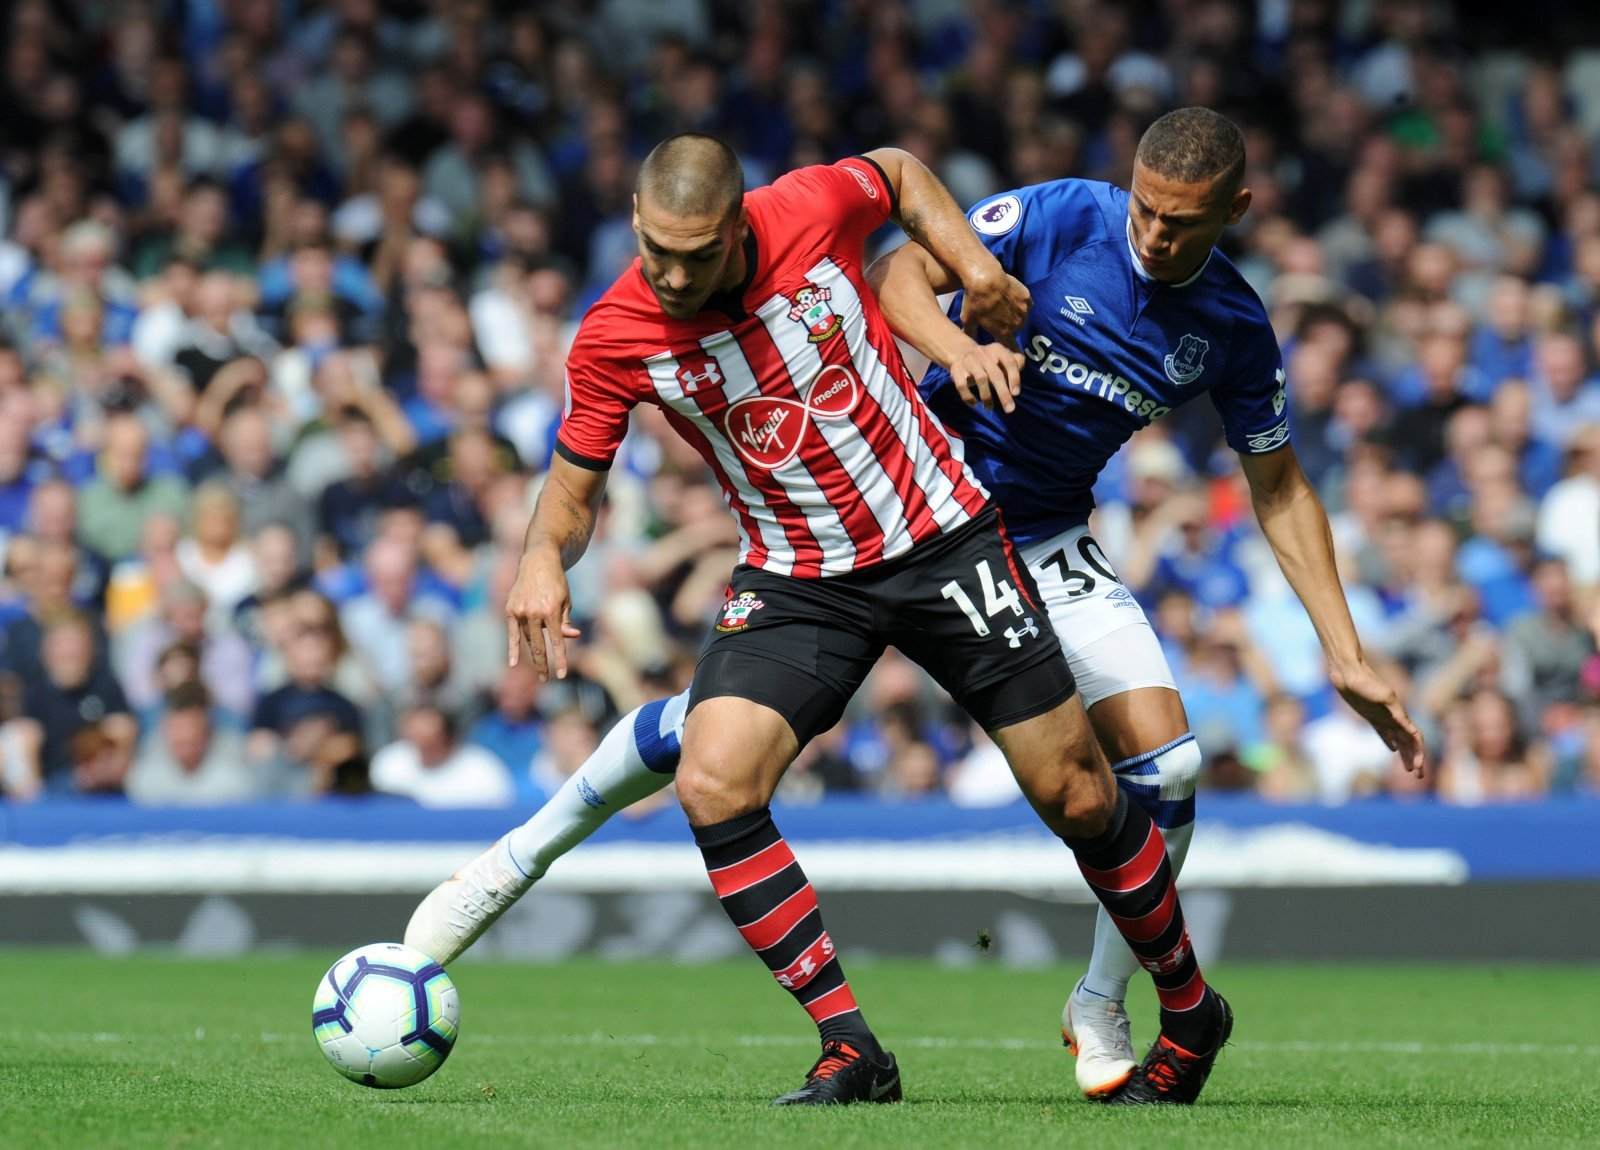 Romeu has shown Hughes was letting a mentally strong player waste away with latest comments